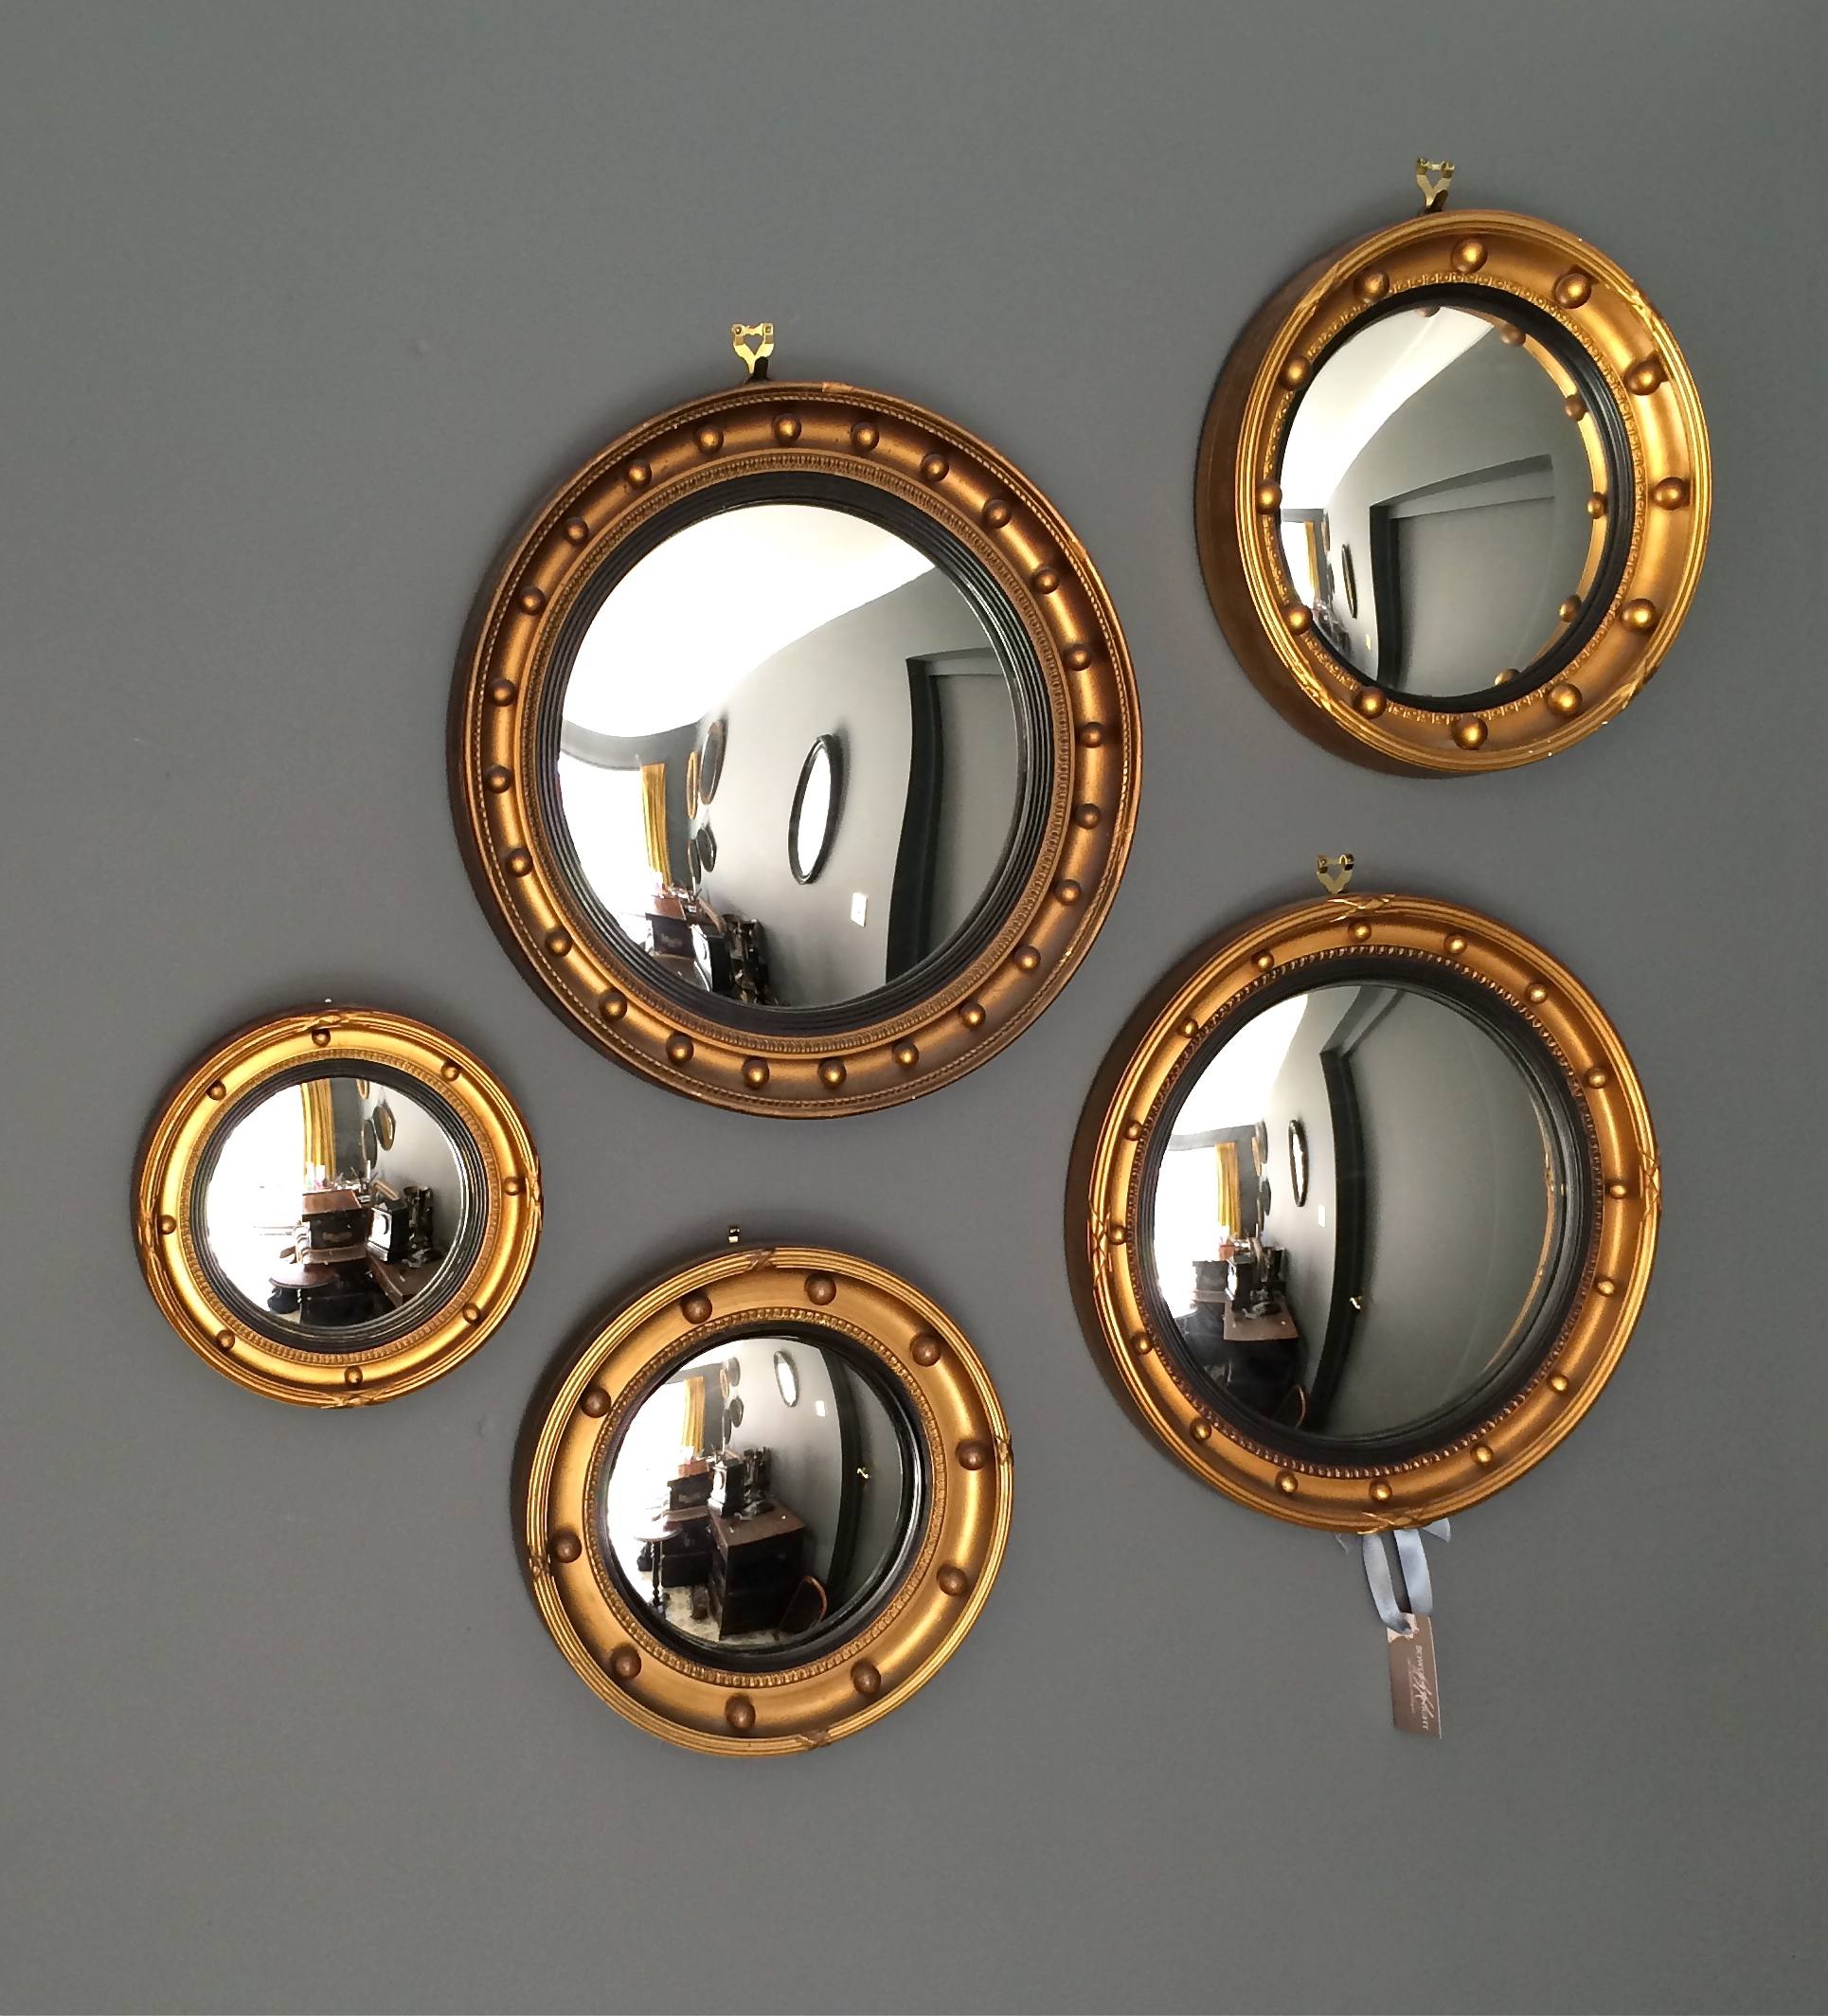 Summer Styling The Decorative Antique Way At Bowden Knight Within Convex Mirror Decorative (View 6 of 15)